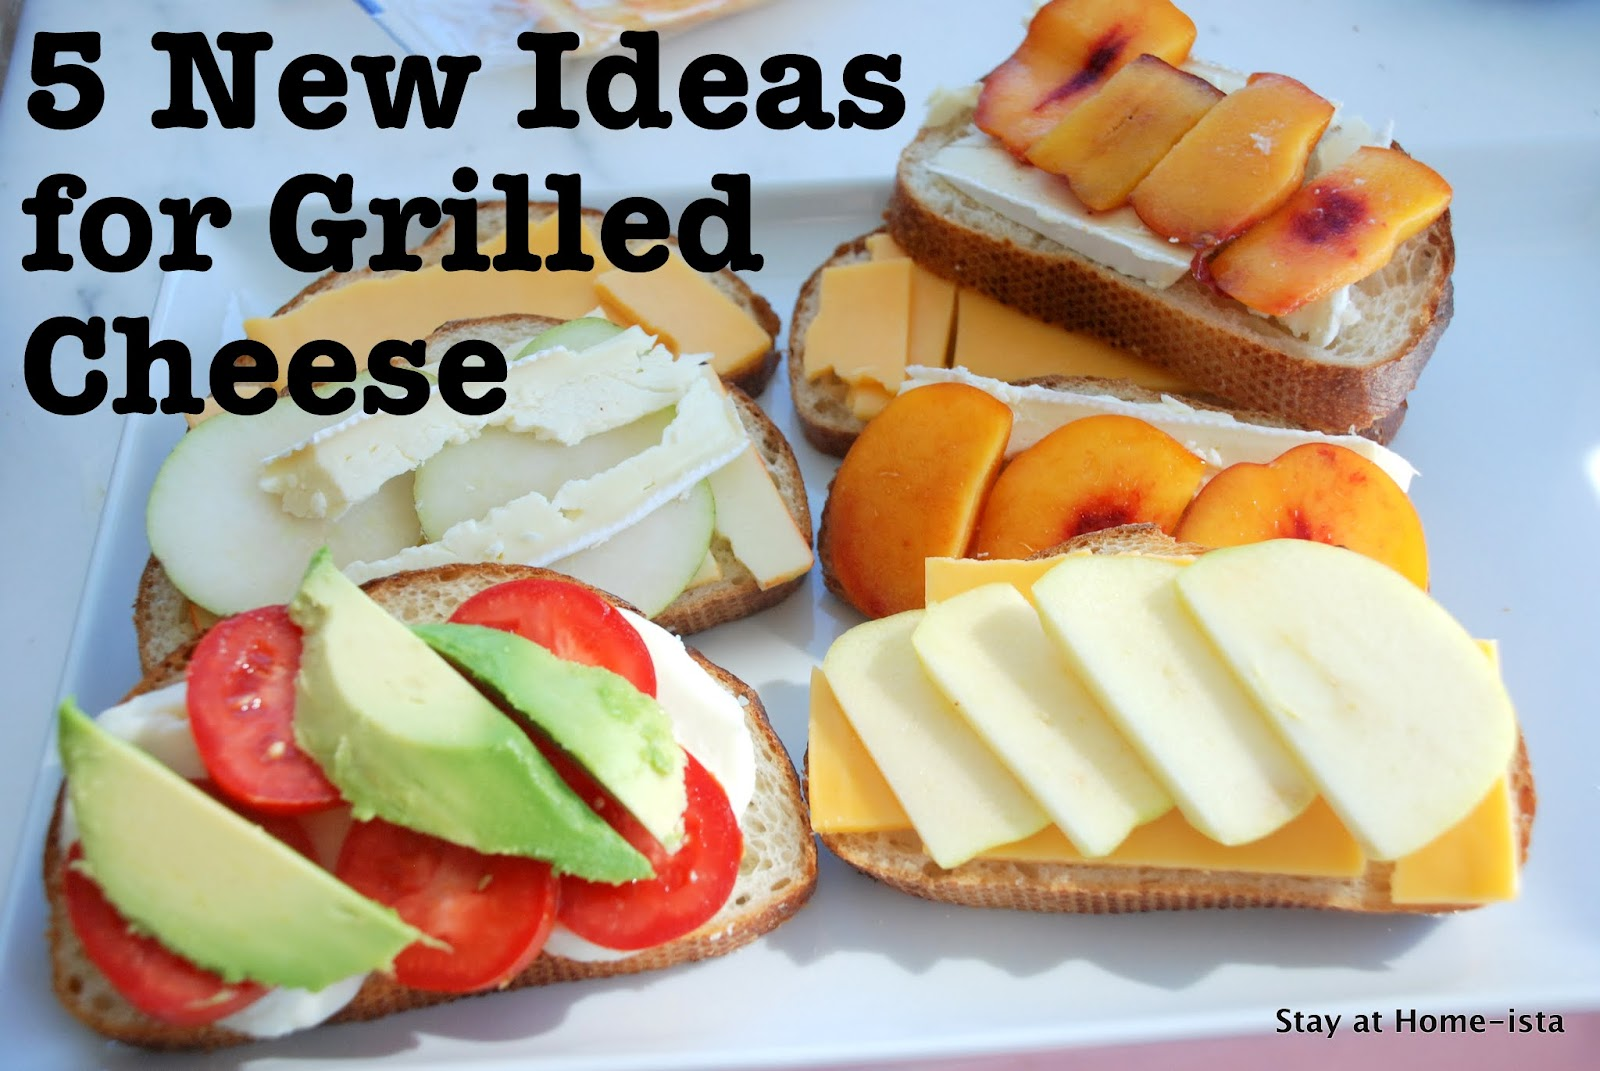 grilled cheese sandwich recipes plain just cheddar cheese and bread ...